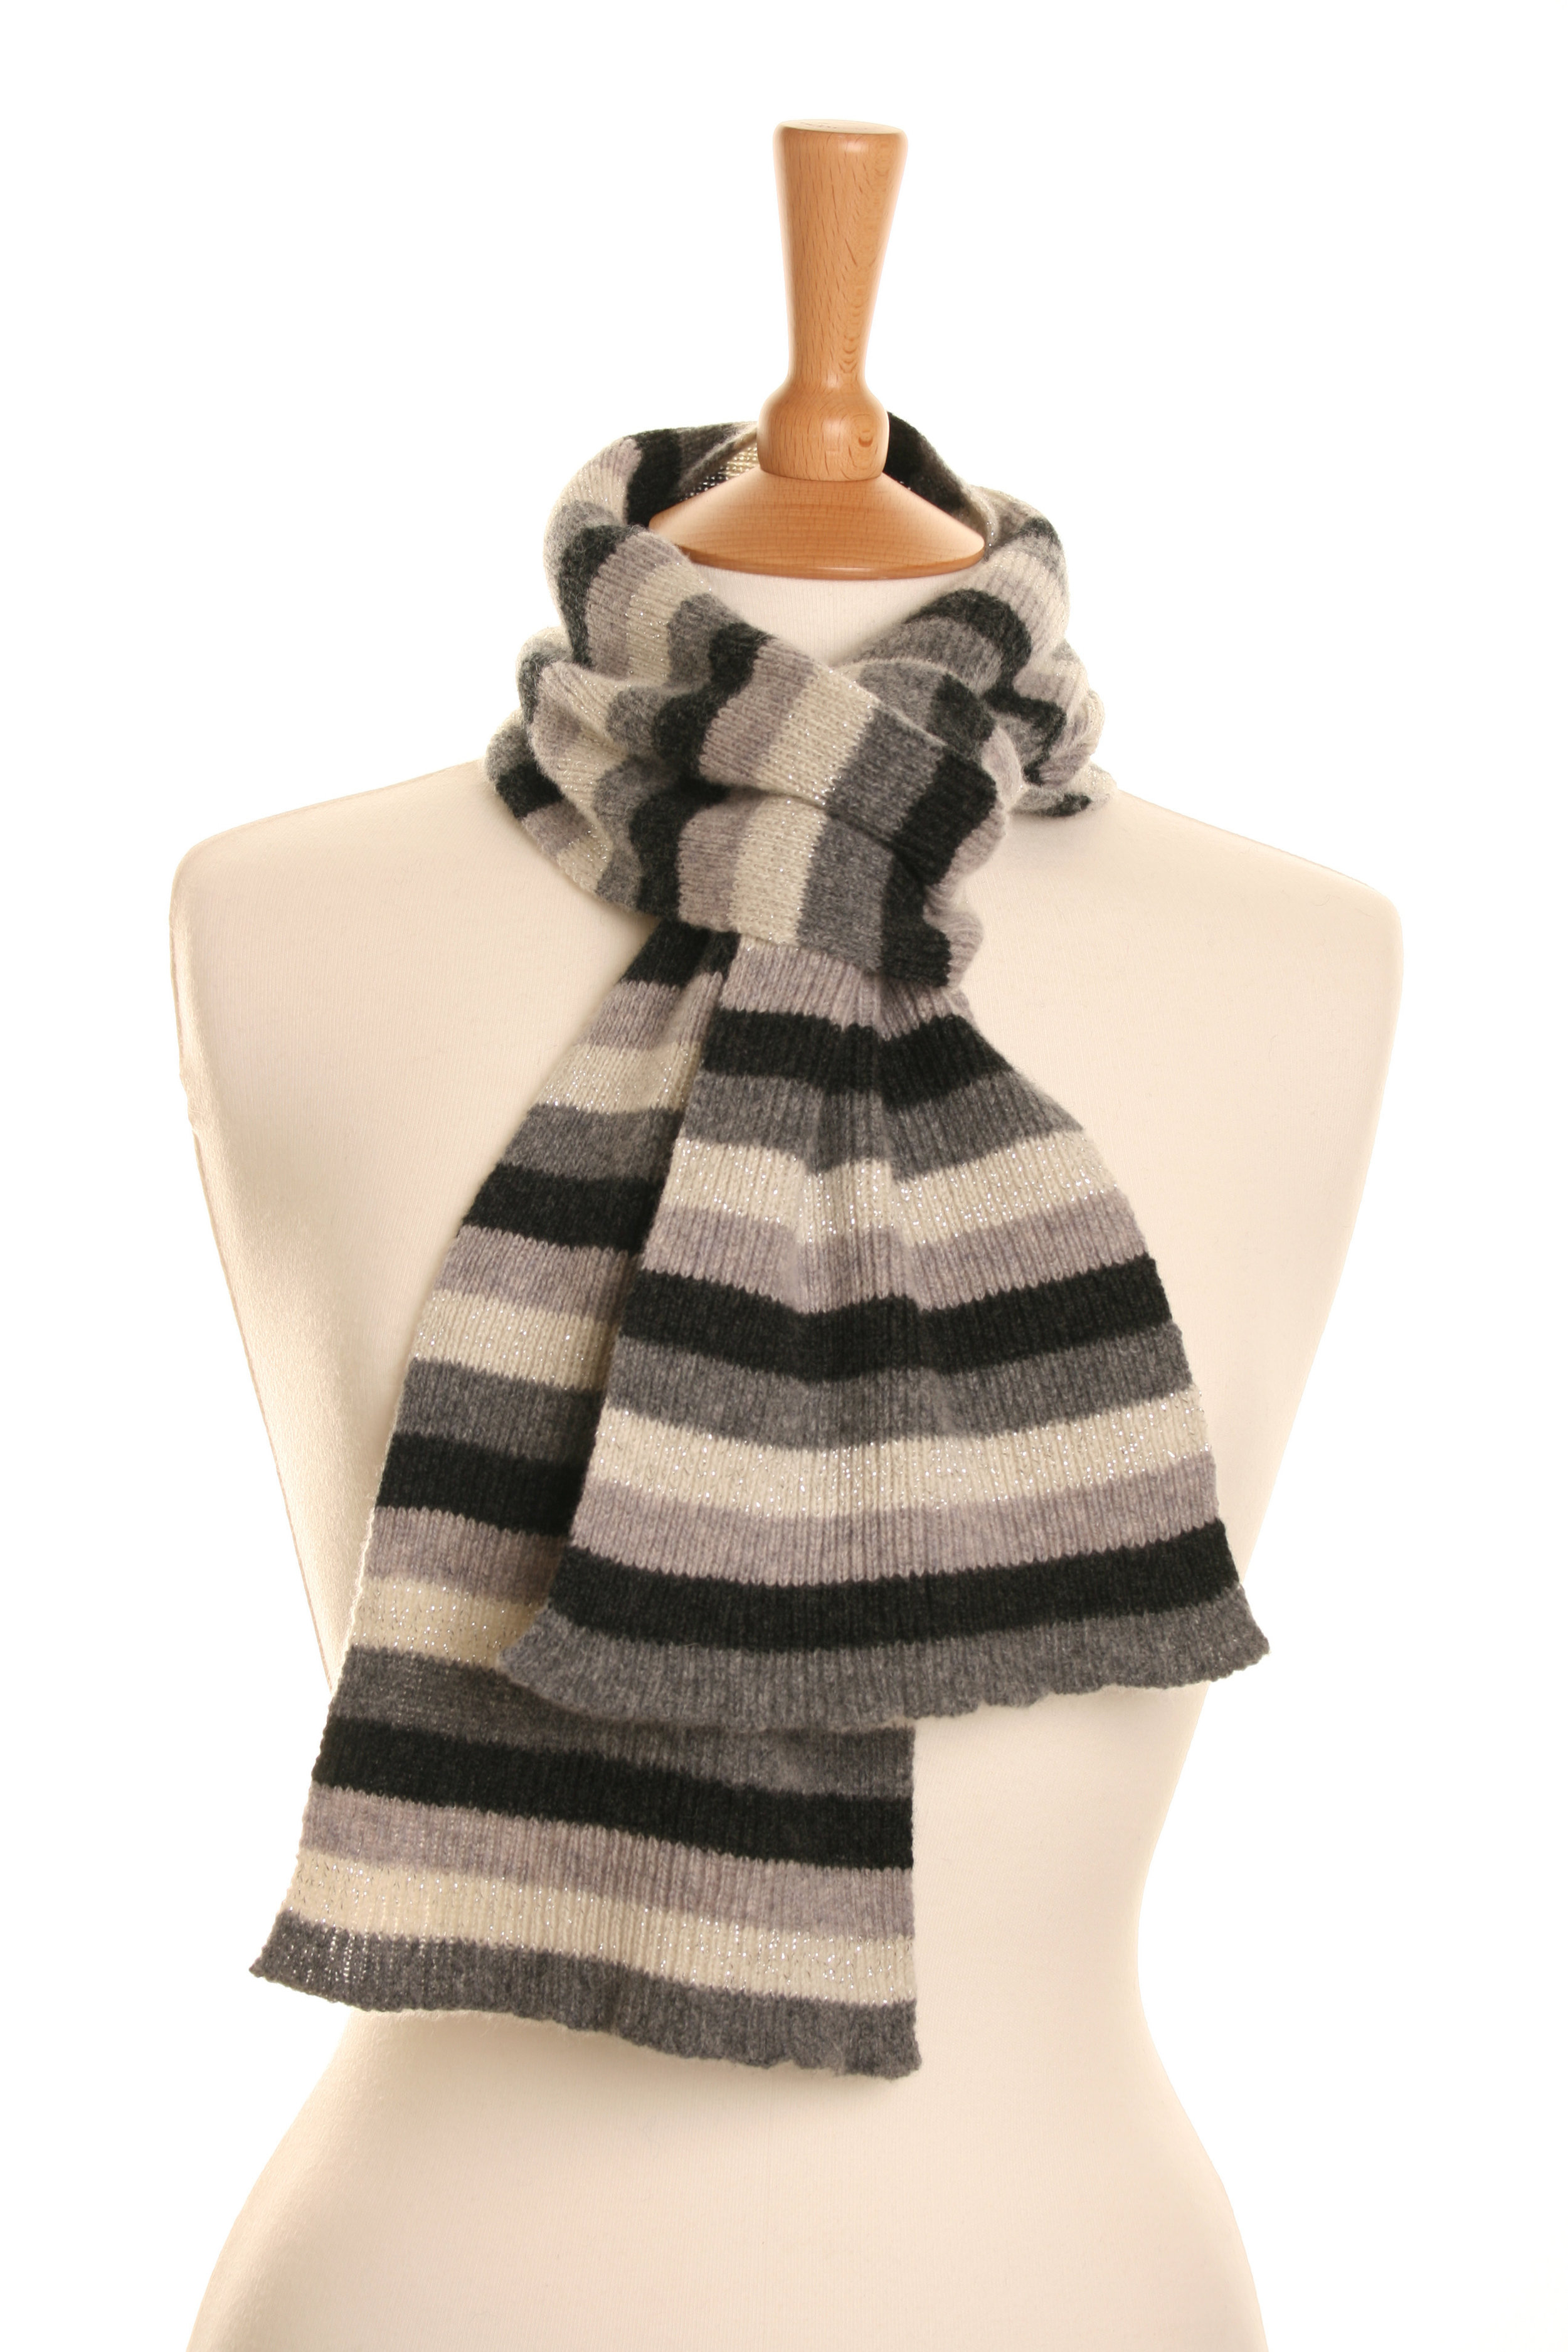 Stripy Luxe Grey Scarf  Knitted Lambswool  £50